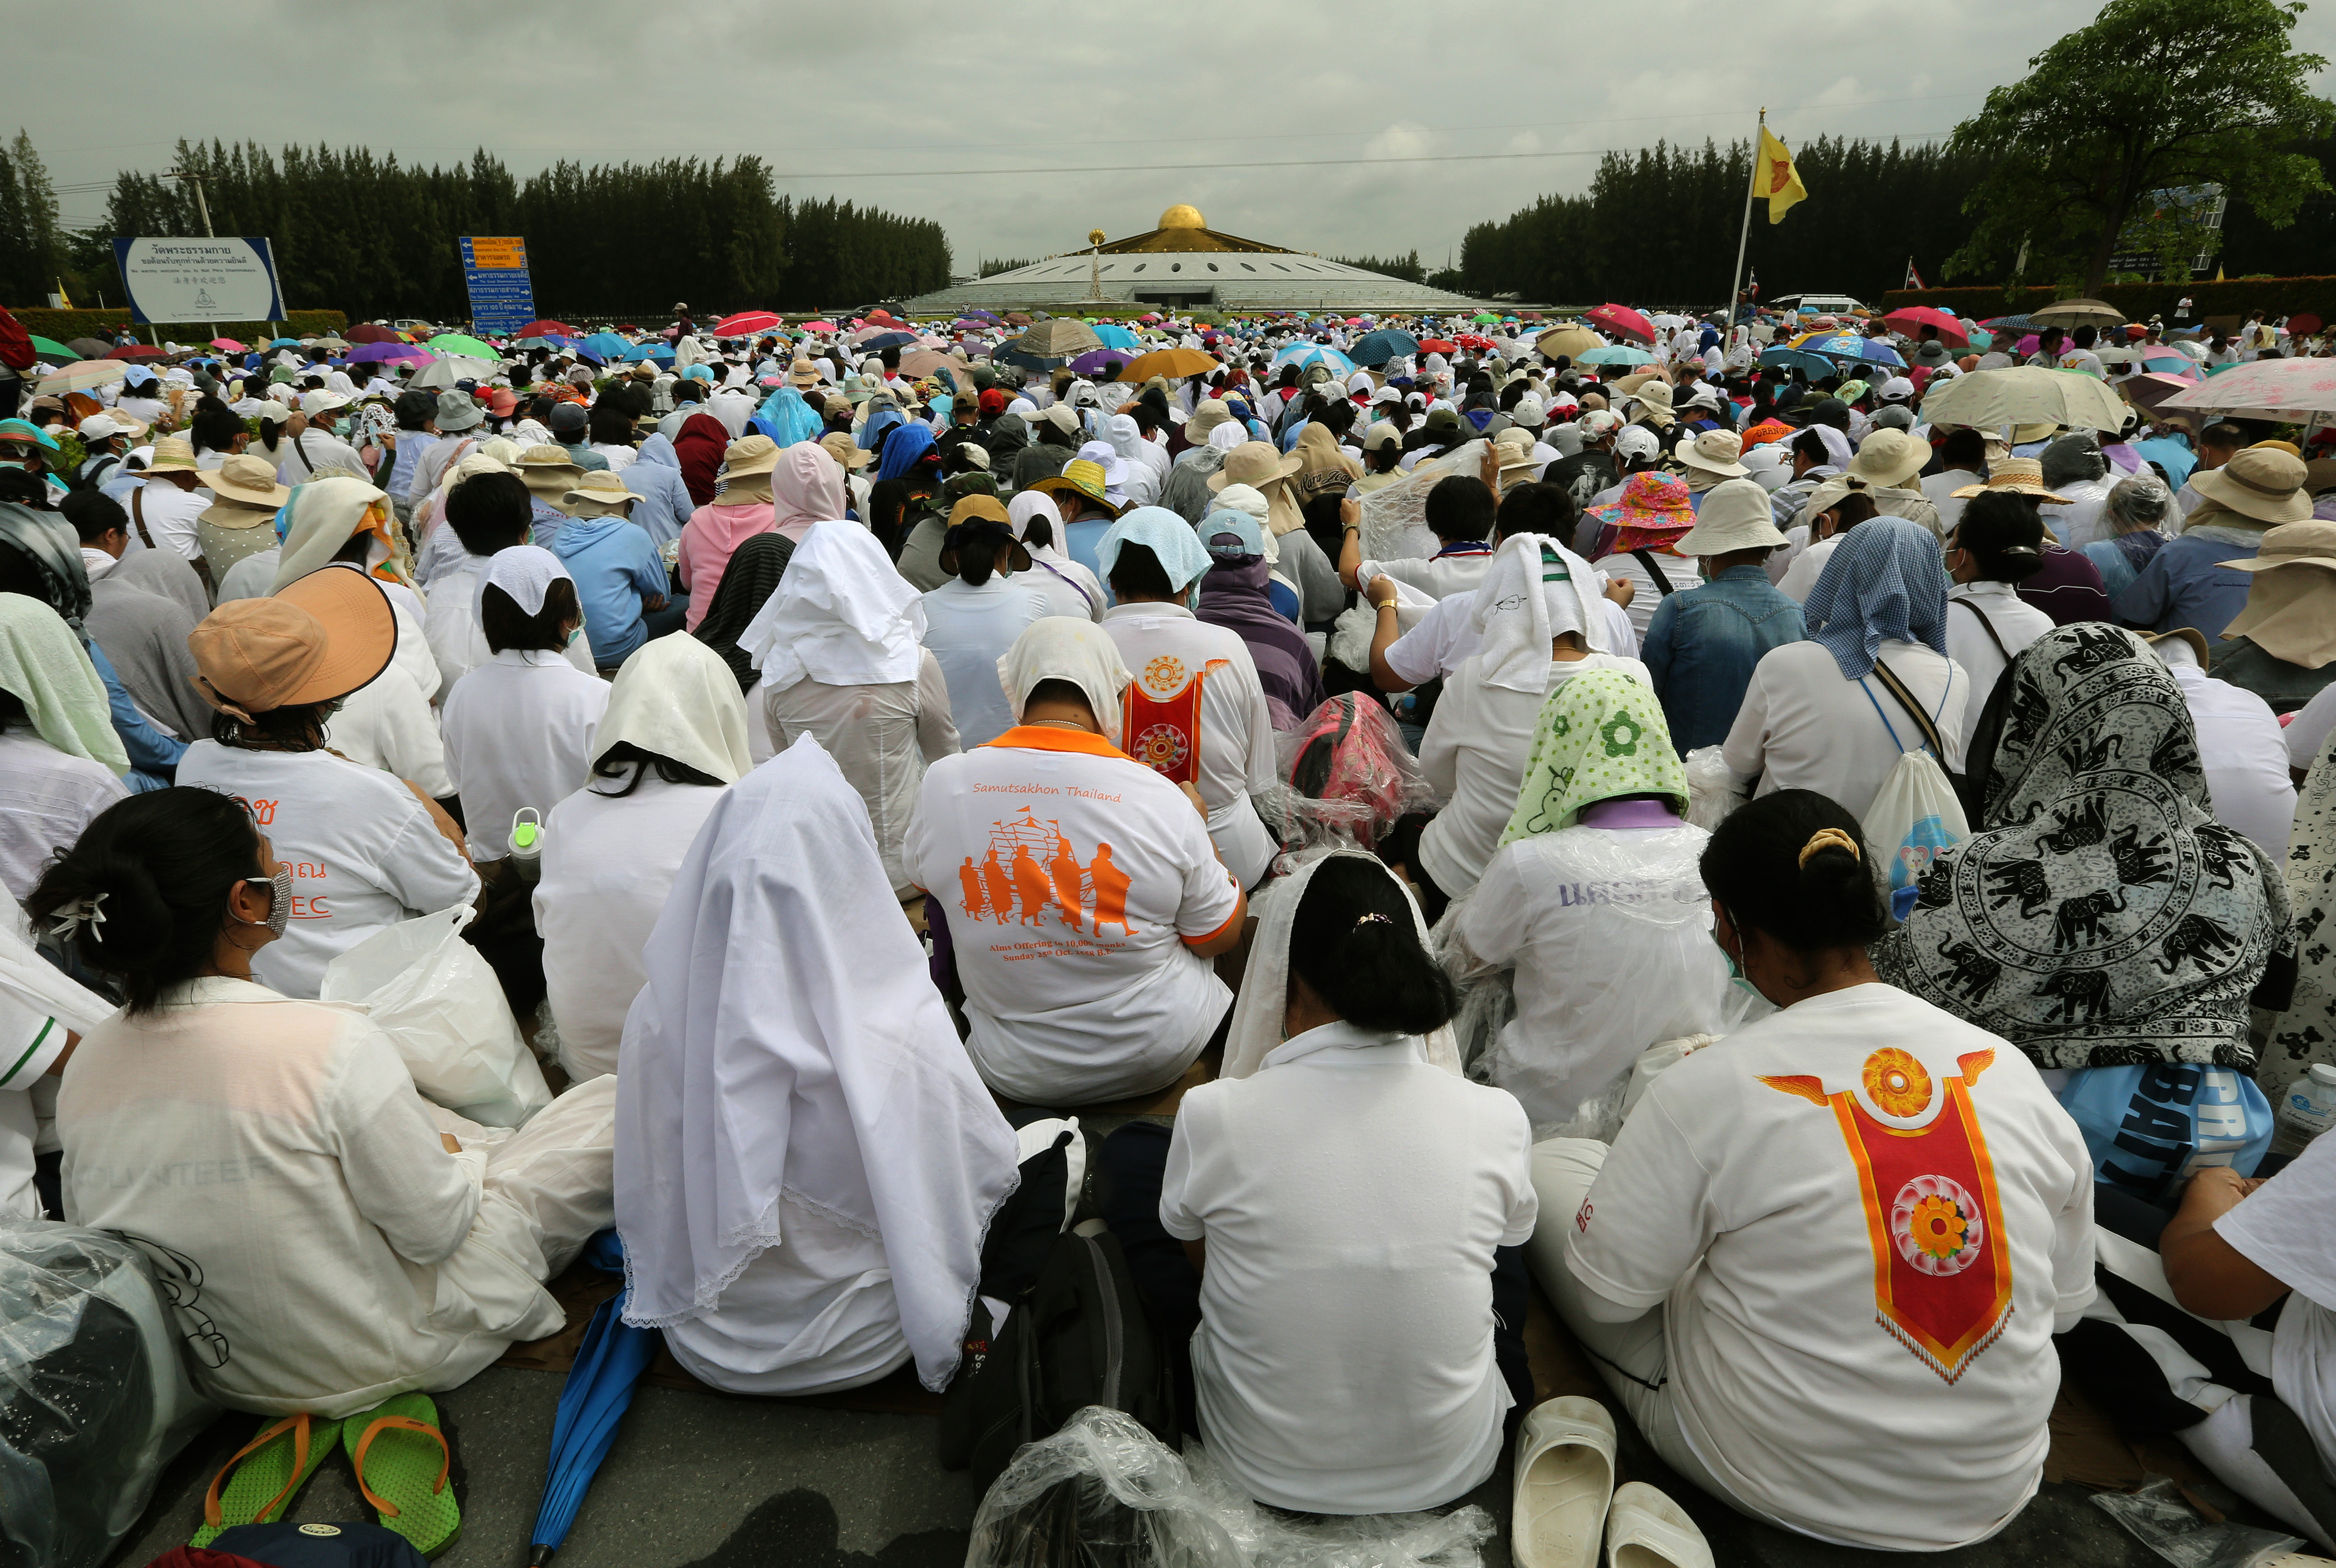 Devotees meditate at Wat Phra Dhammakaya, a Buddhist temple in Pathum Thani province, Thailand, on June 16, 2016